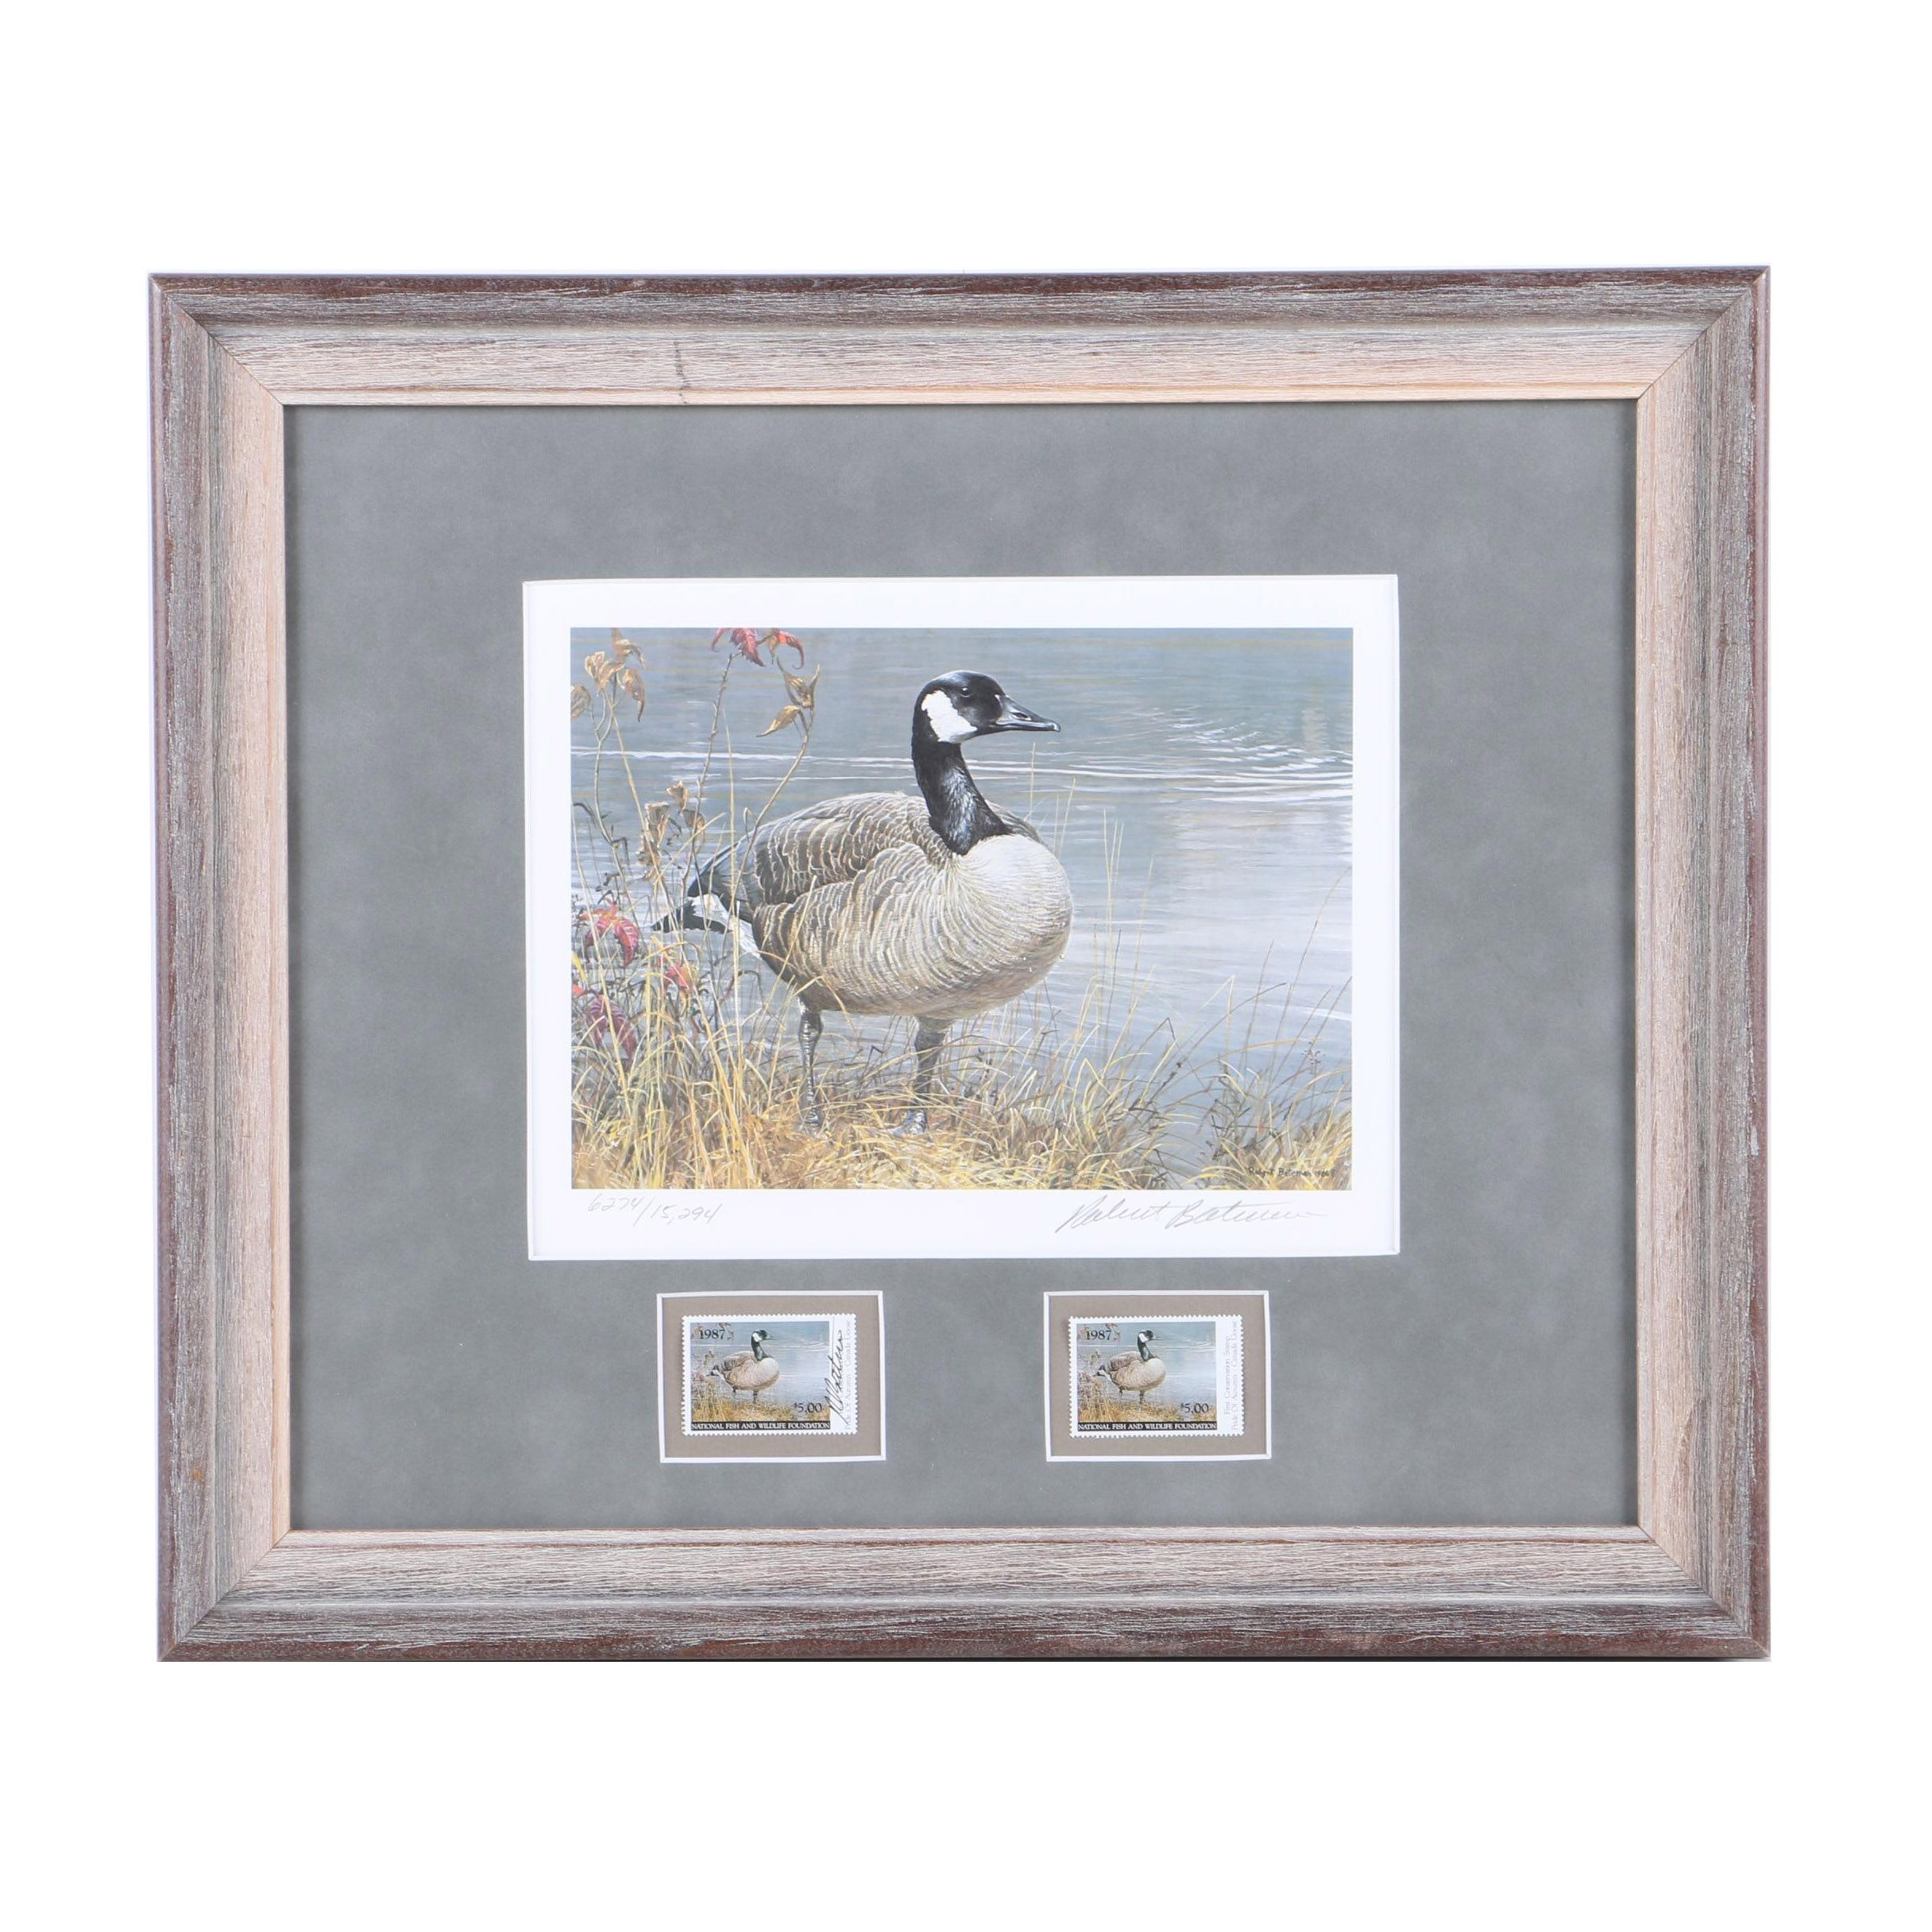 Robert Bateman Limited Edition Offset Lithograph and Stamps of Canadian Goose